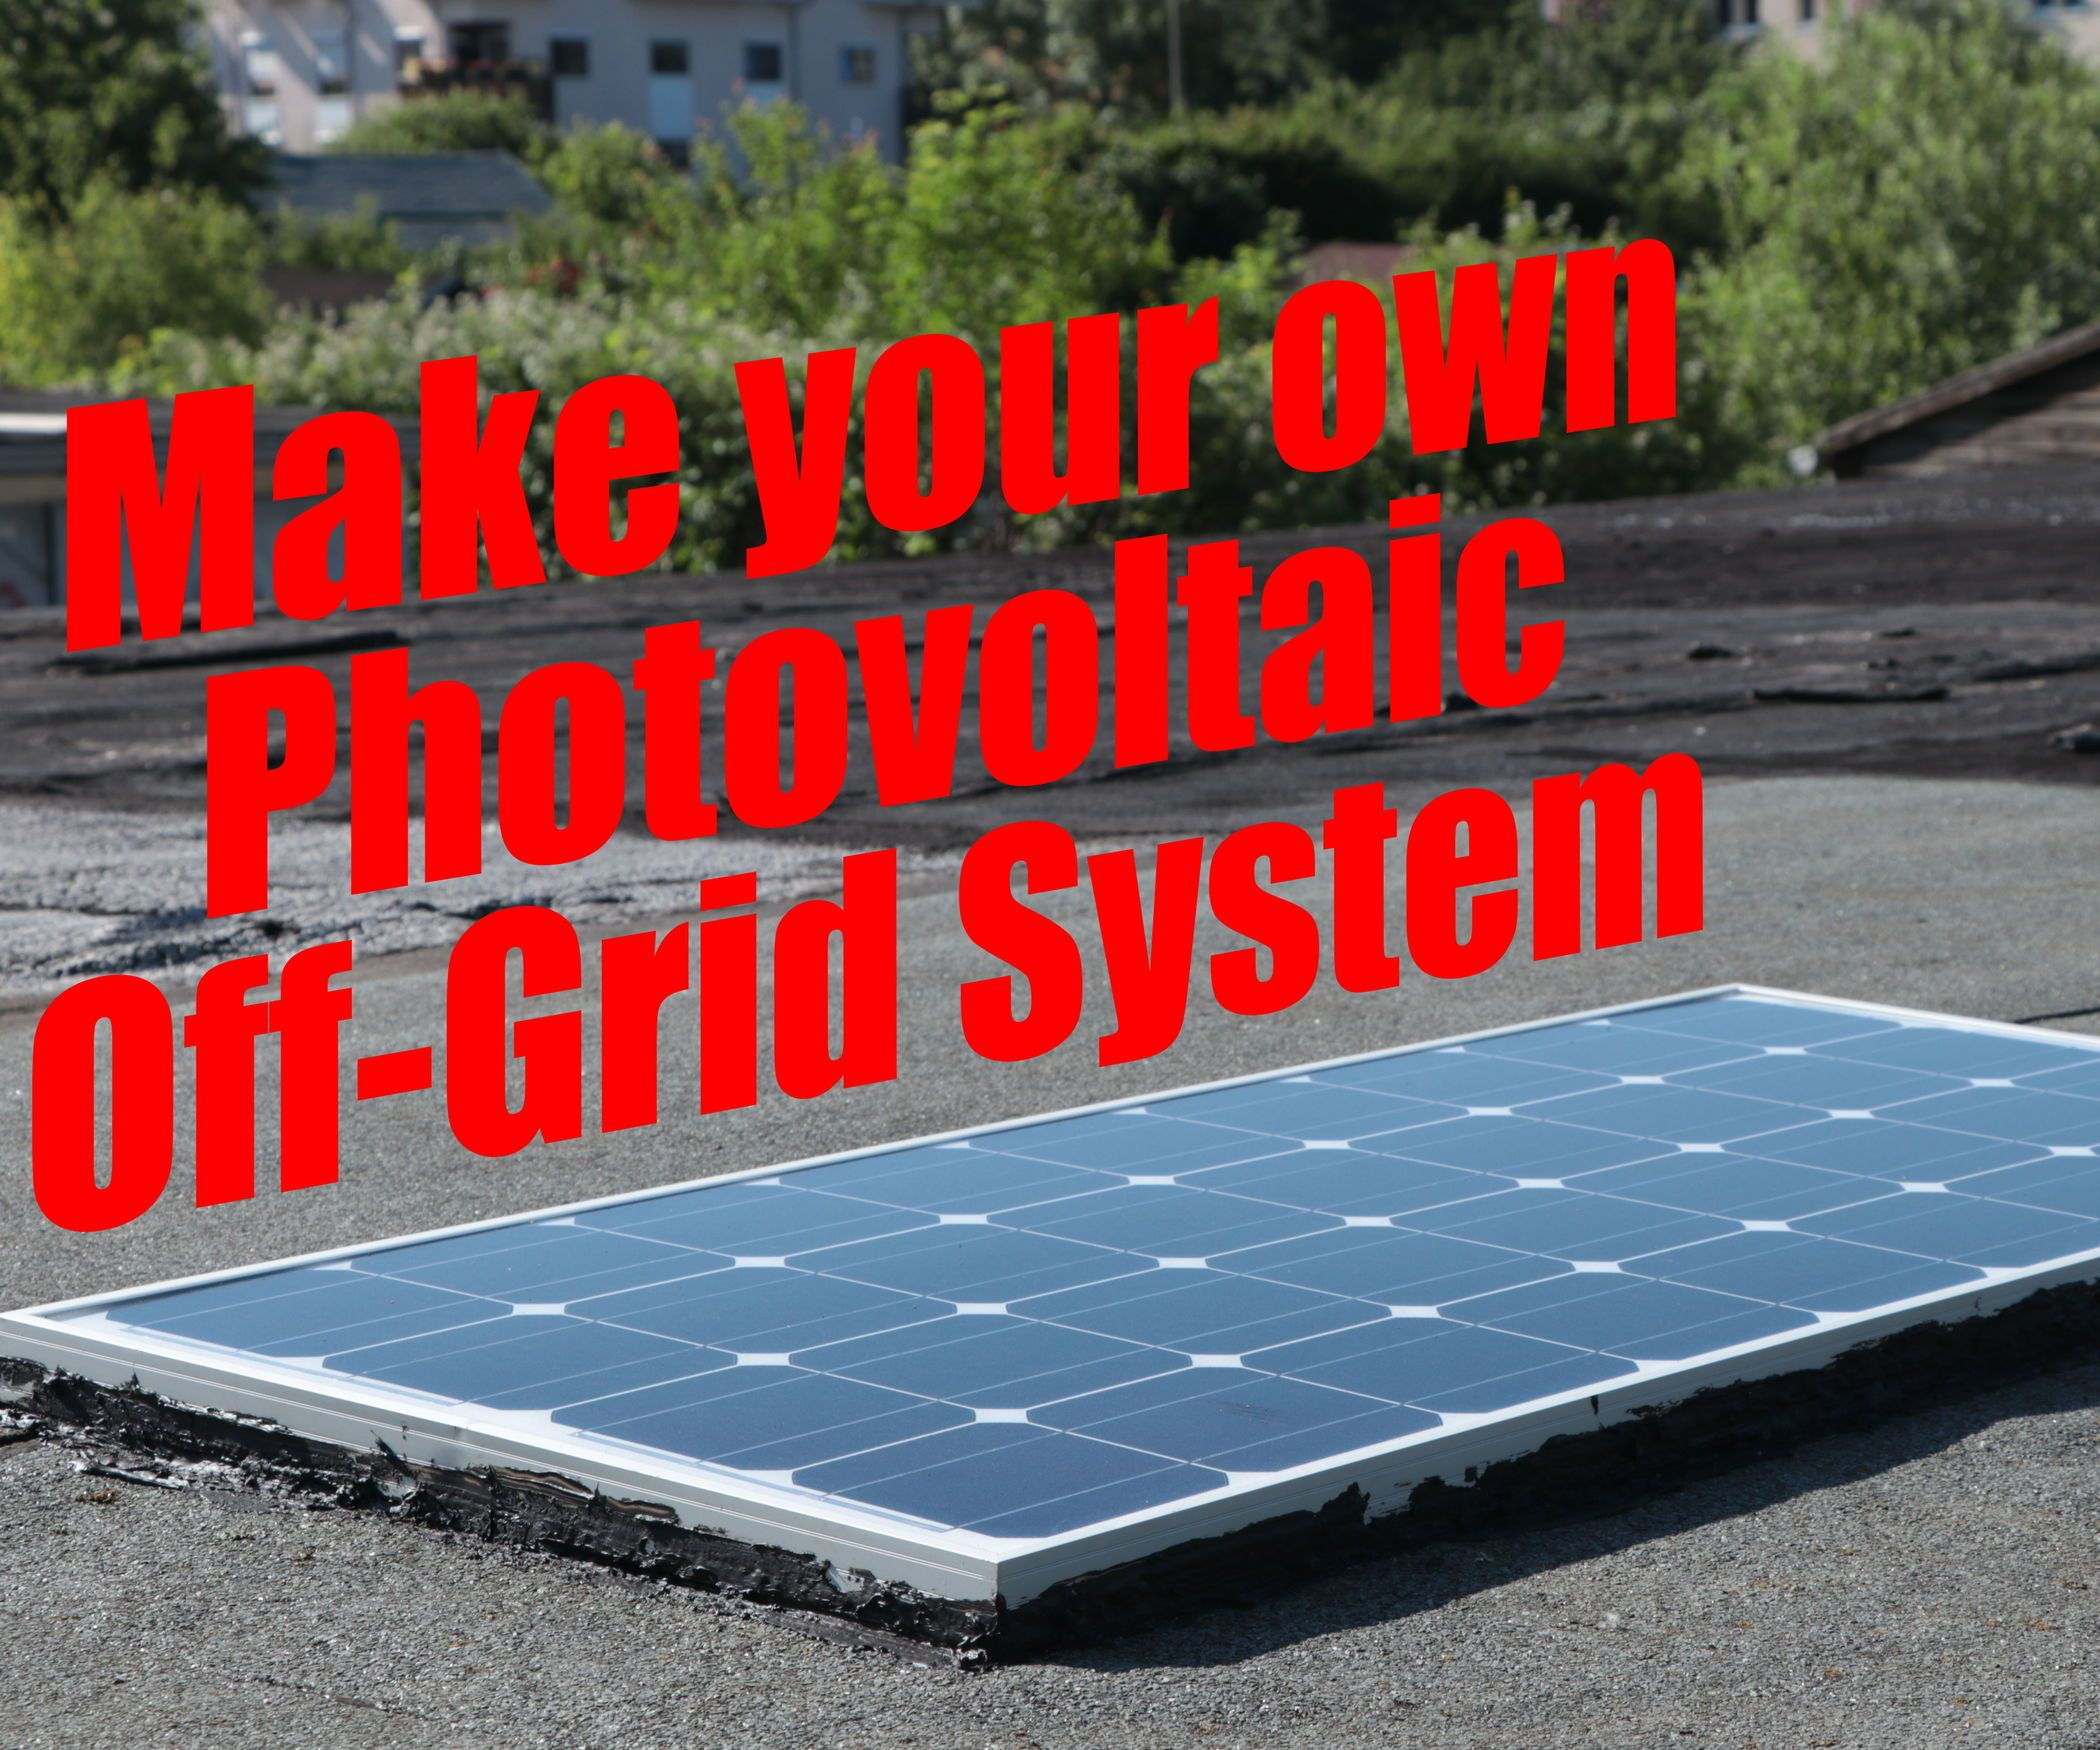 Make Your Own Photovoltaic Off Grid System 4 Steps With Pictures Via Instructables By Greatscottlab Off Grid System Solar Panels Solar